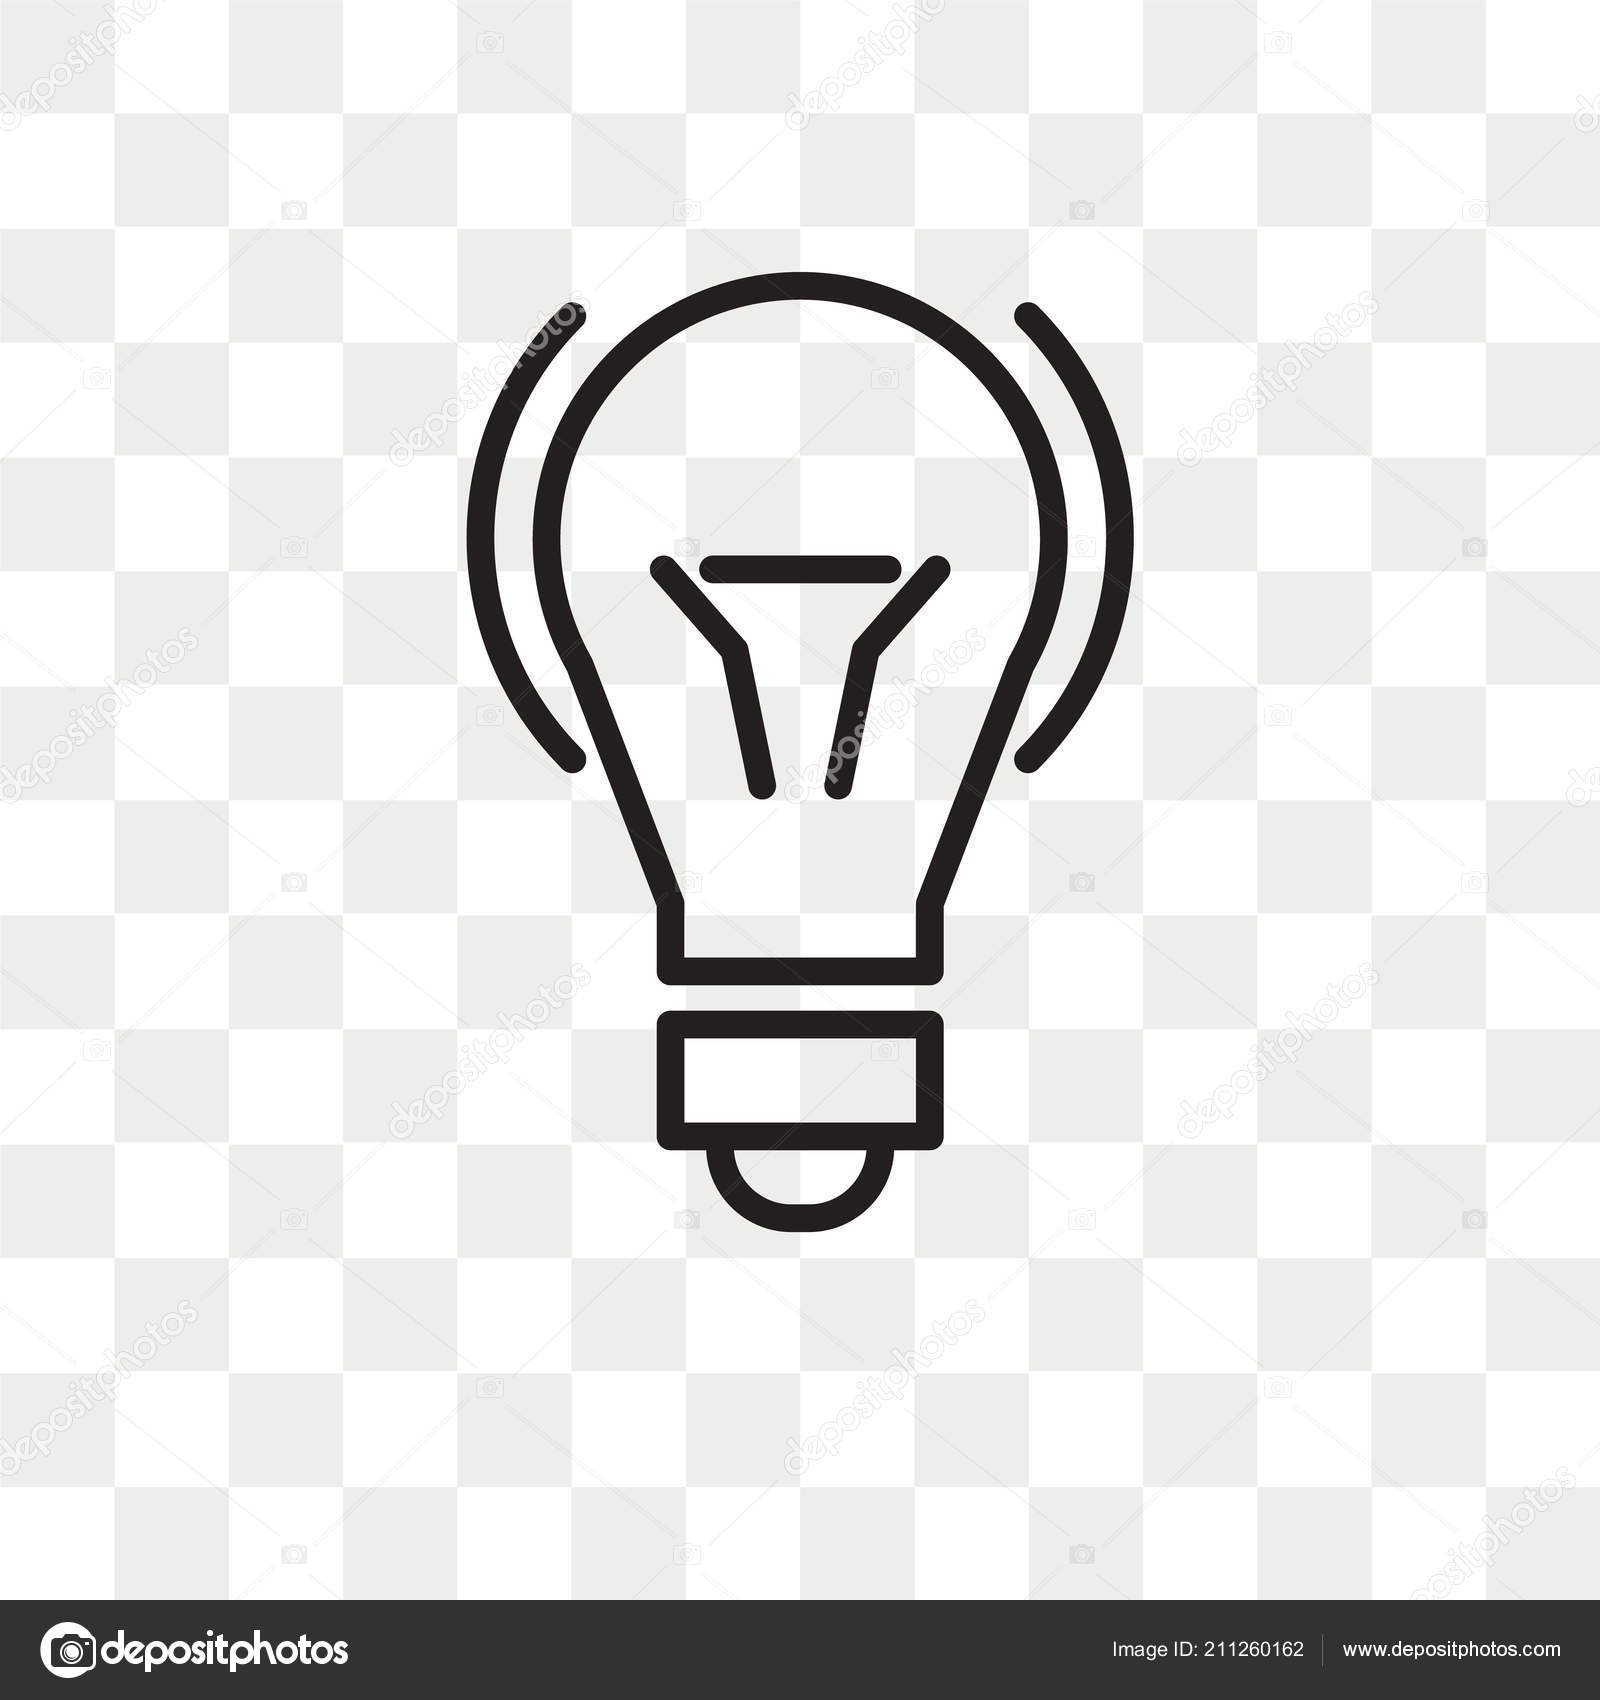 Background Png Light Bulb Light Bulb Vector Icon Isolated